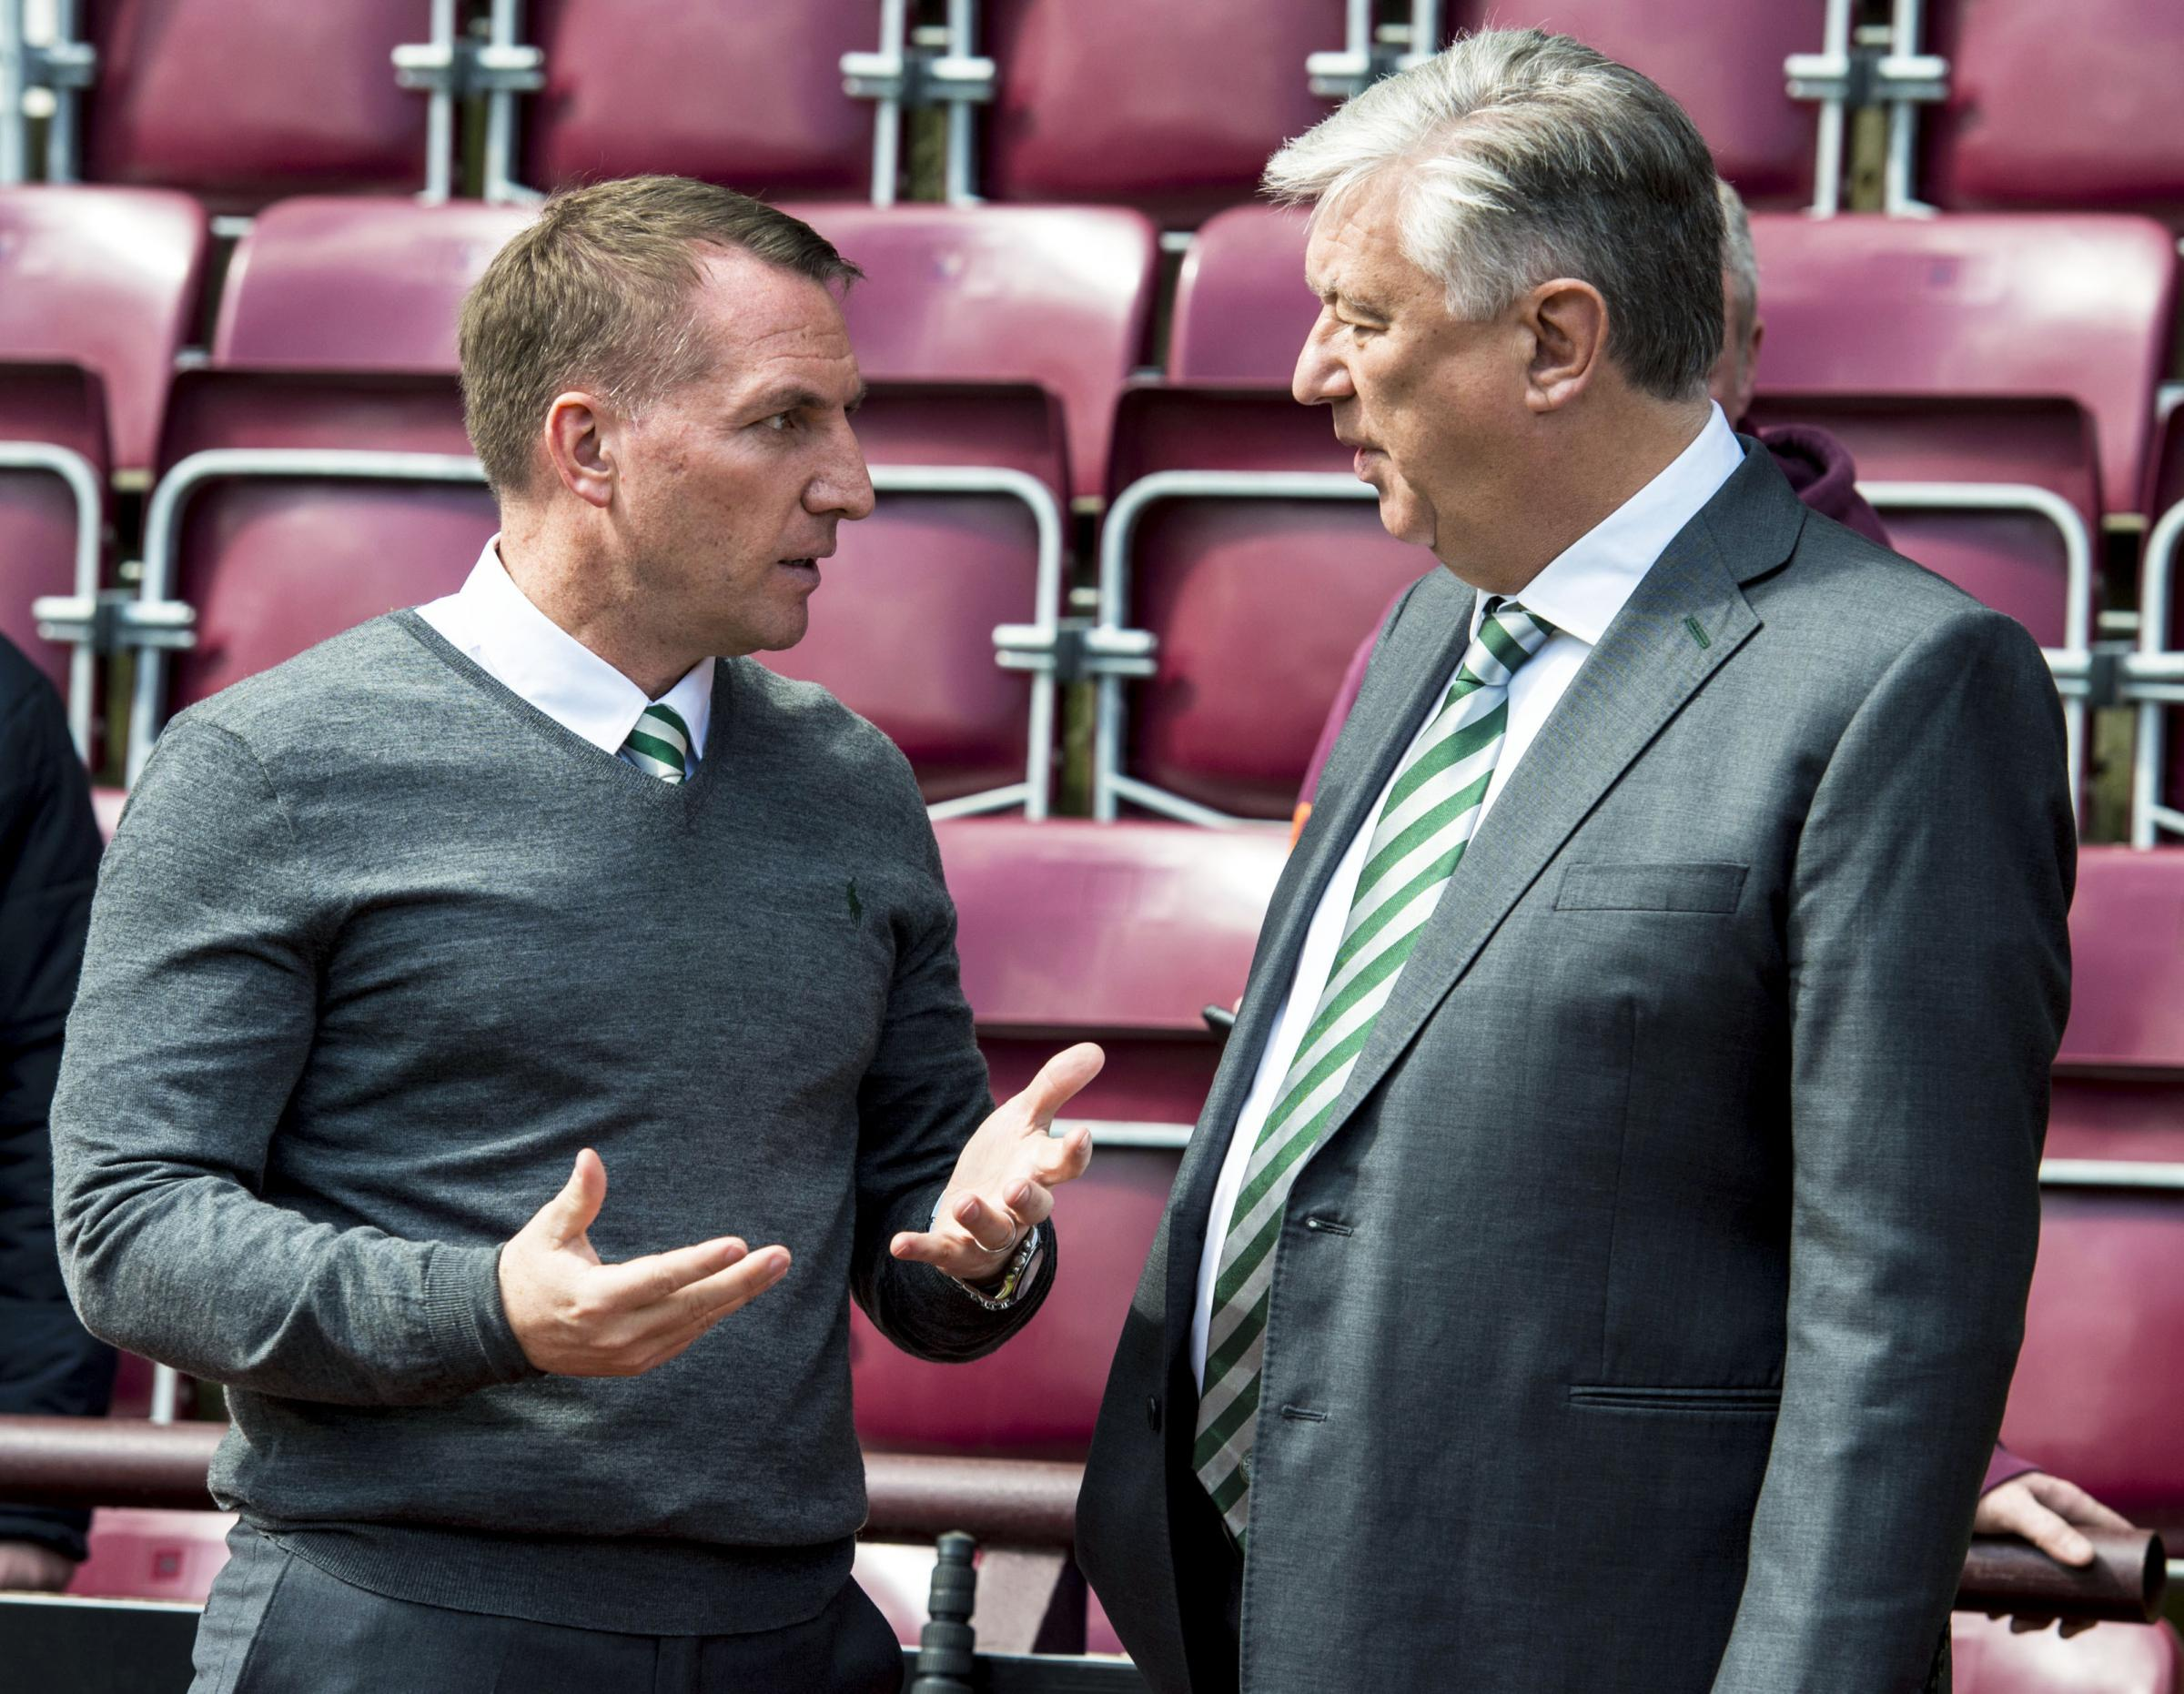 Celtic manager Brendan Rodgers will be hoping that Peter Lawwell, Ian Bankier and the rest of the club's board back him in the January transfer window